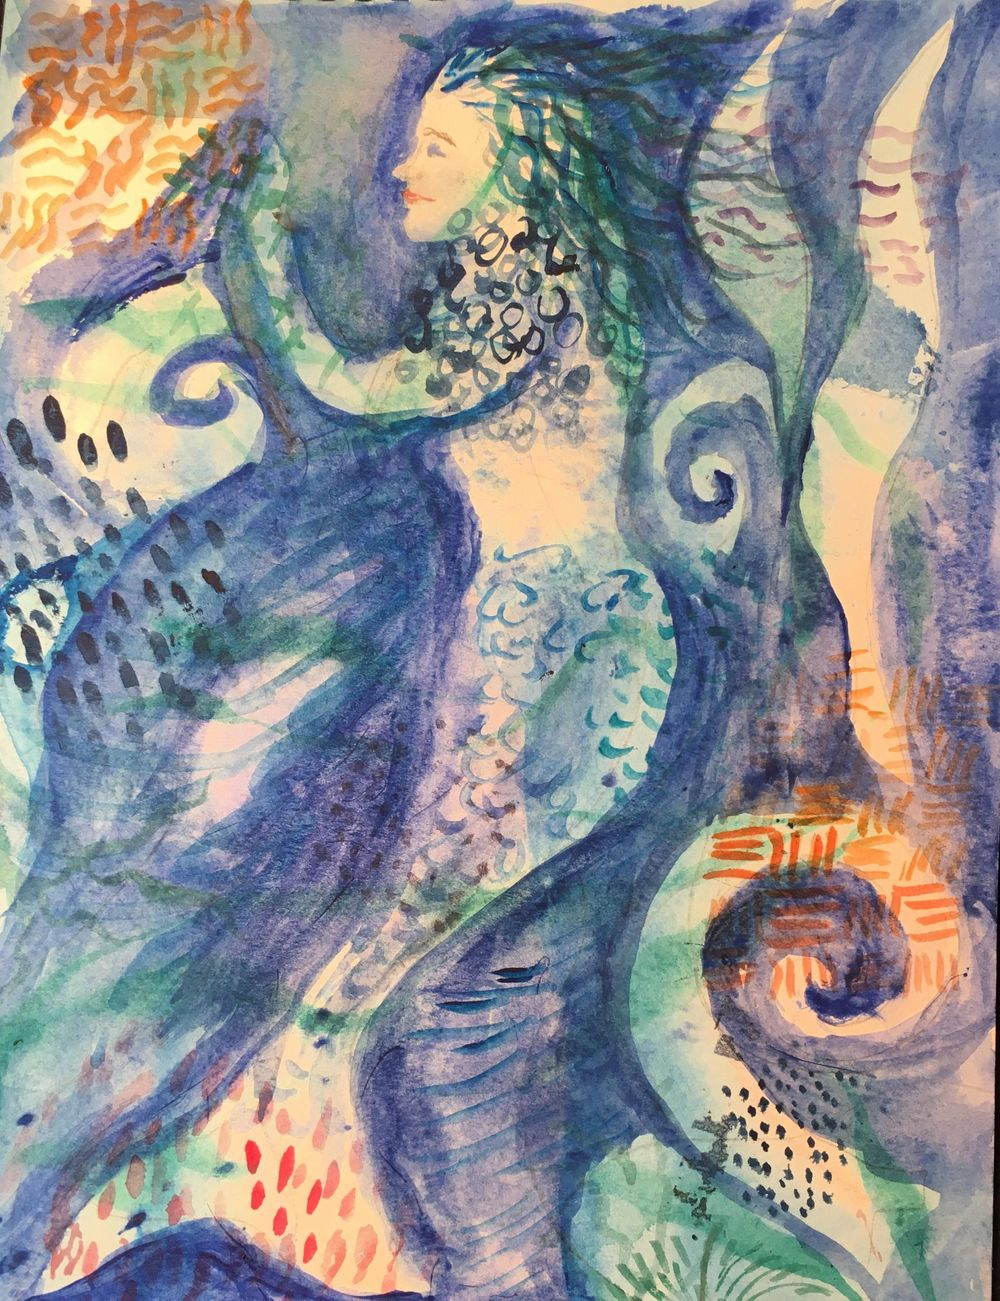 layered mermaid - image 1 - student project